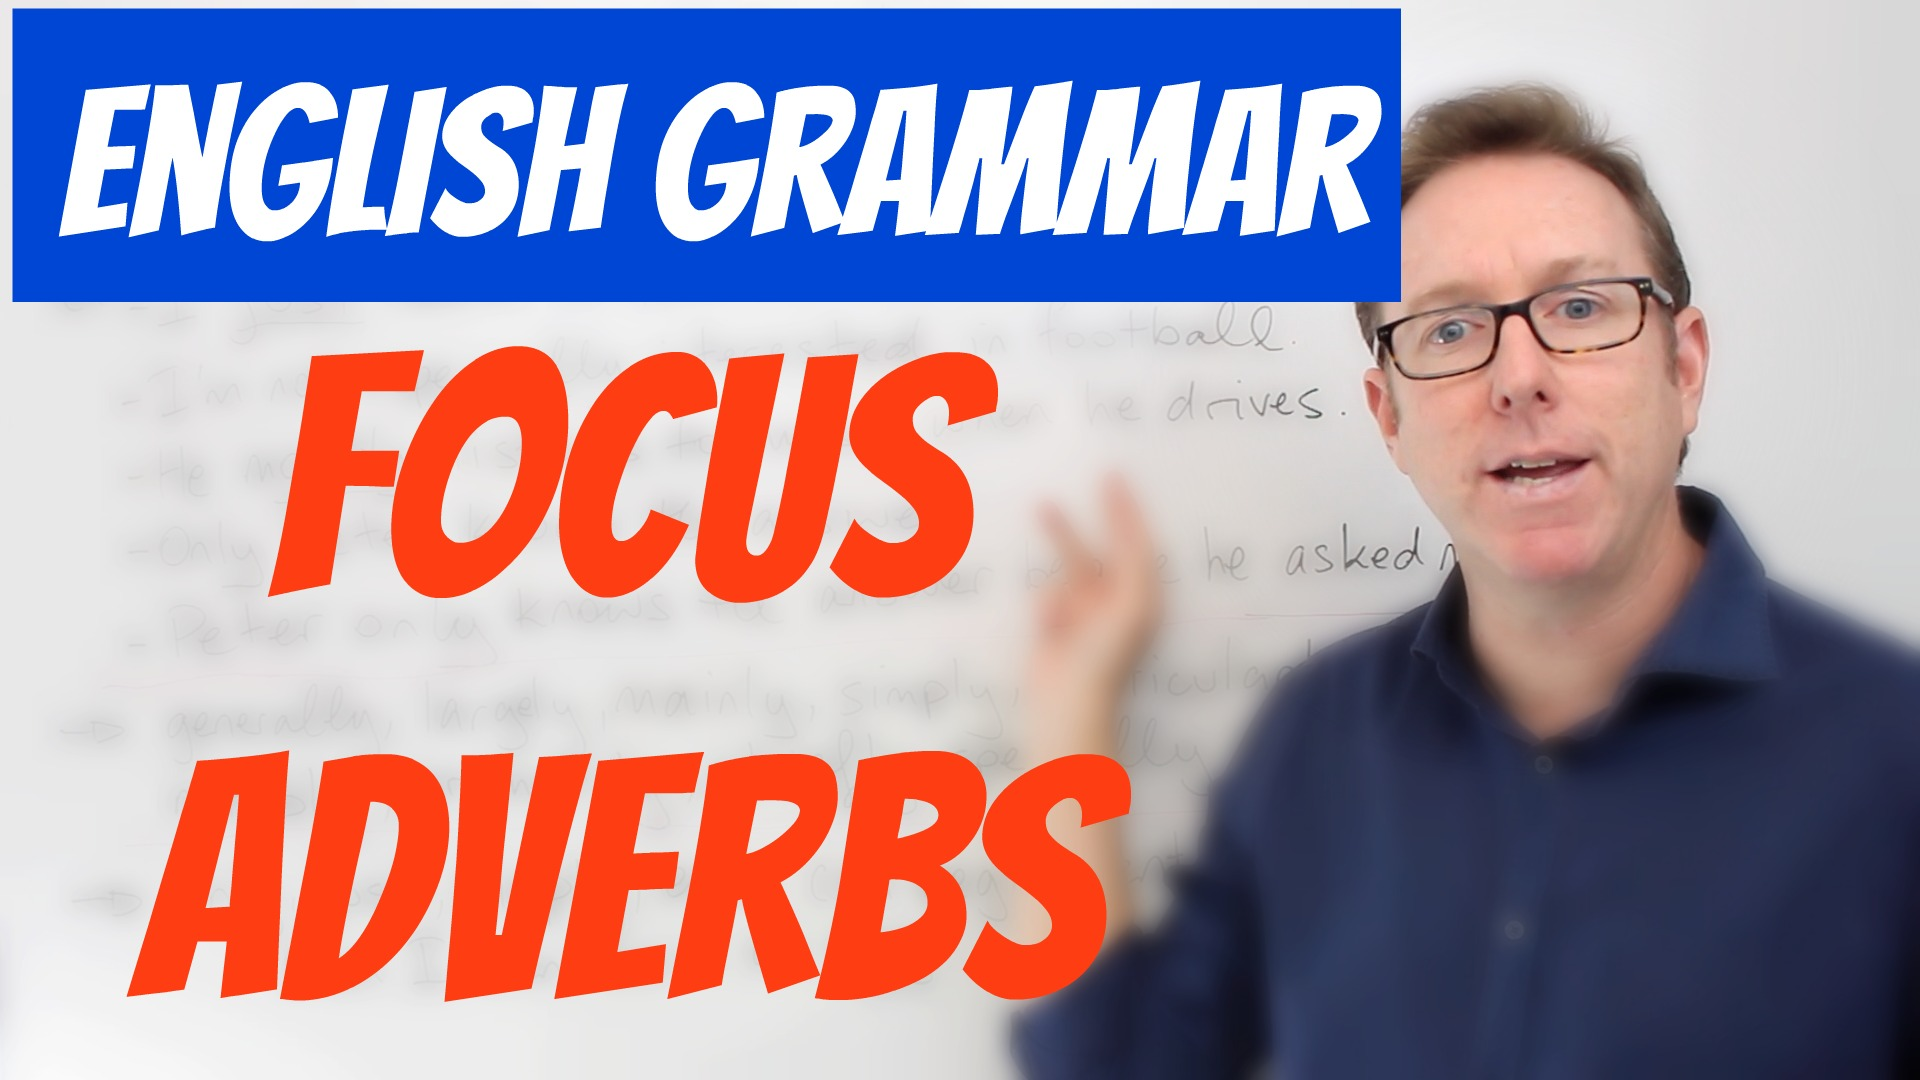 focus adverbs